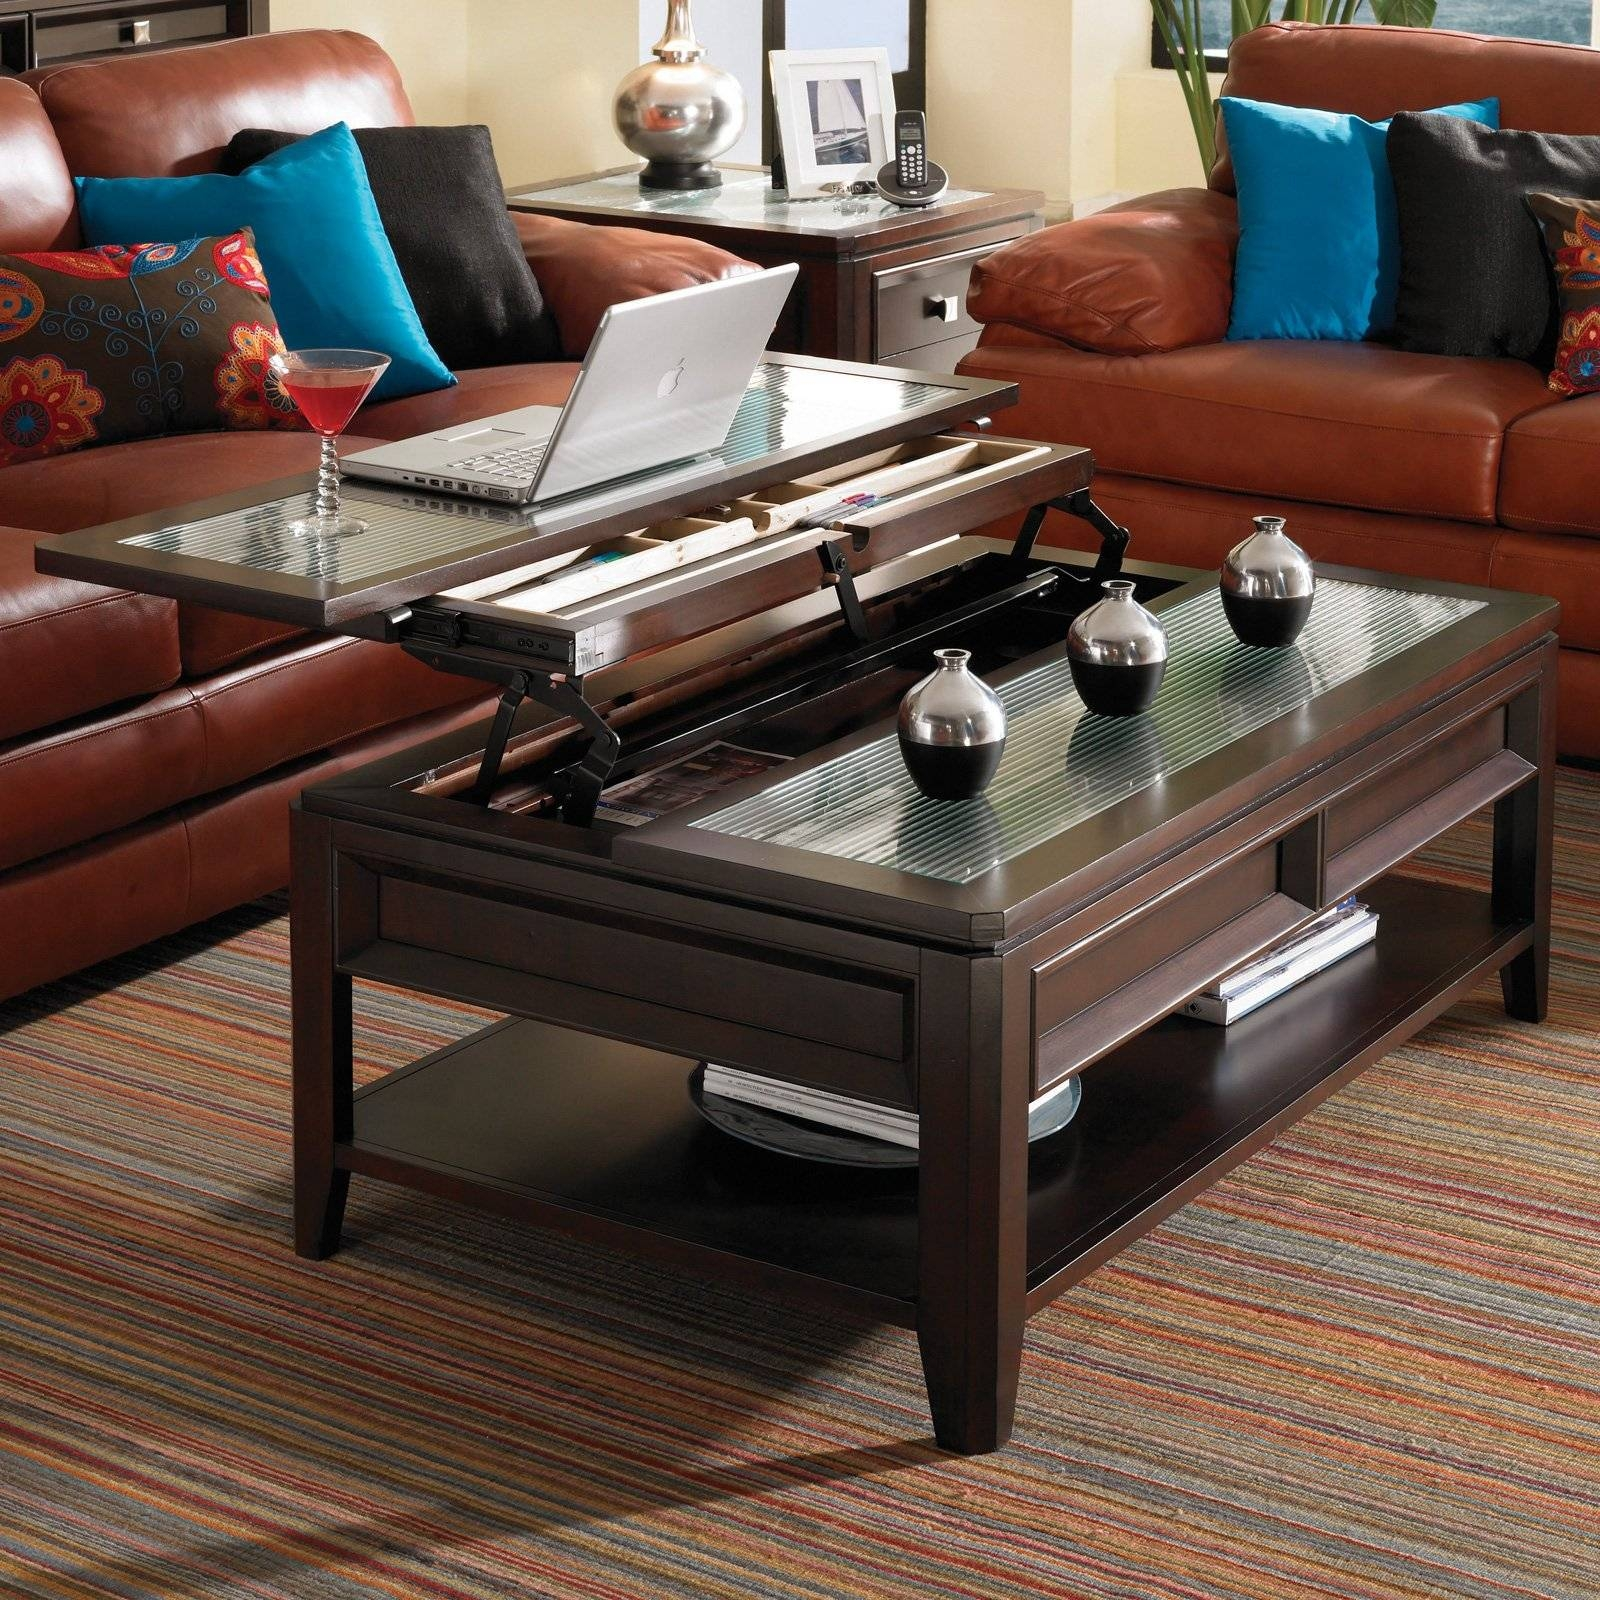 Black Coffee Table With Lift Up Top | Coffee Tables Decoration in Top Lifting Coffee Tables (Image 4 of 30)